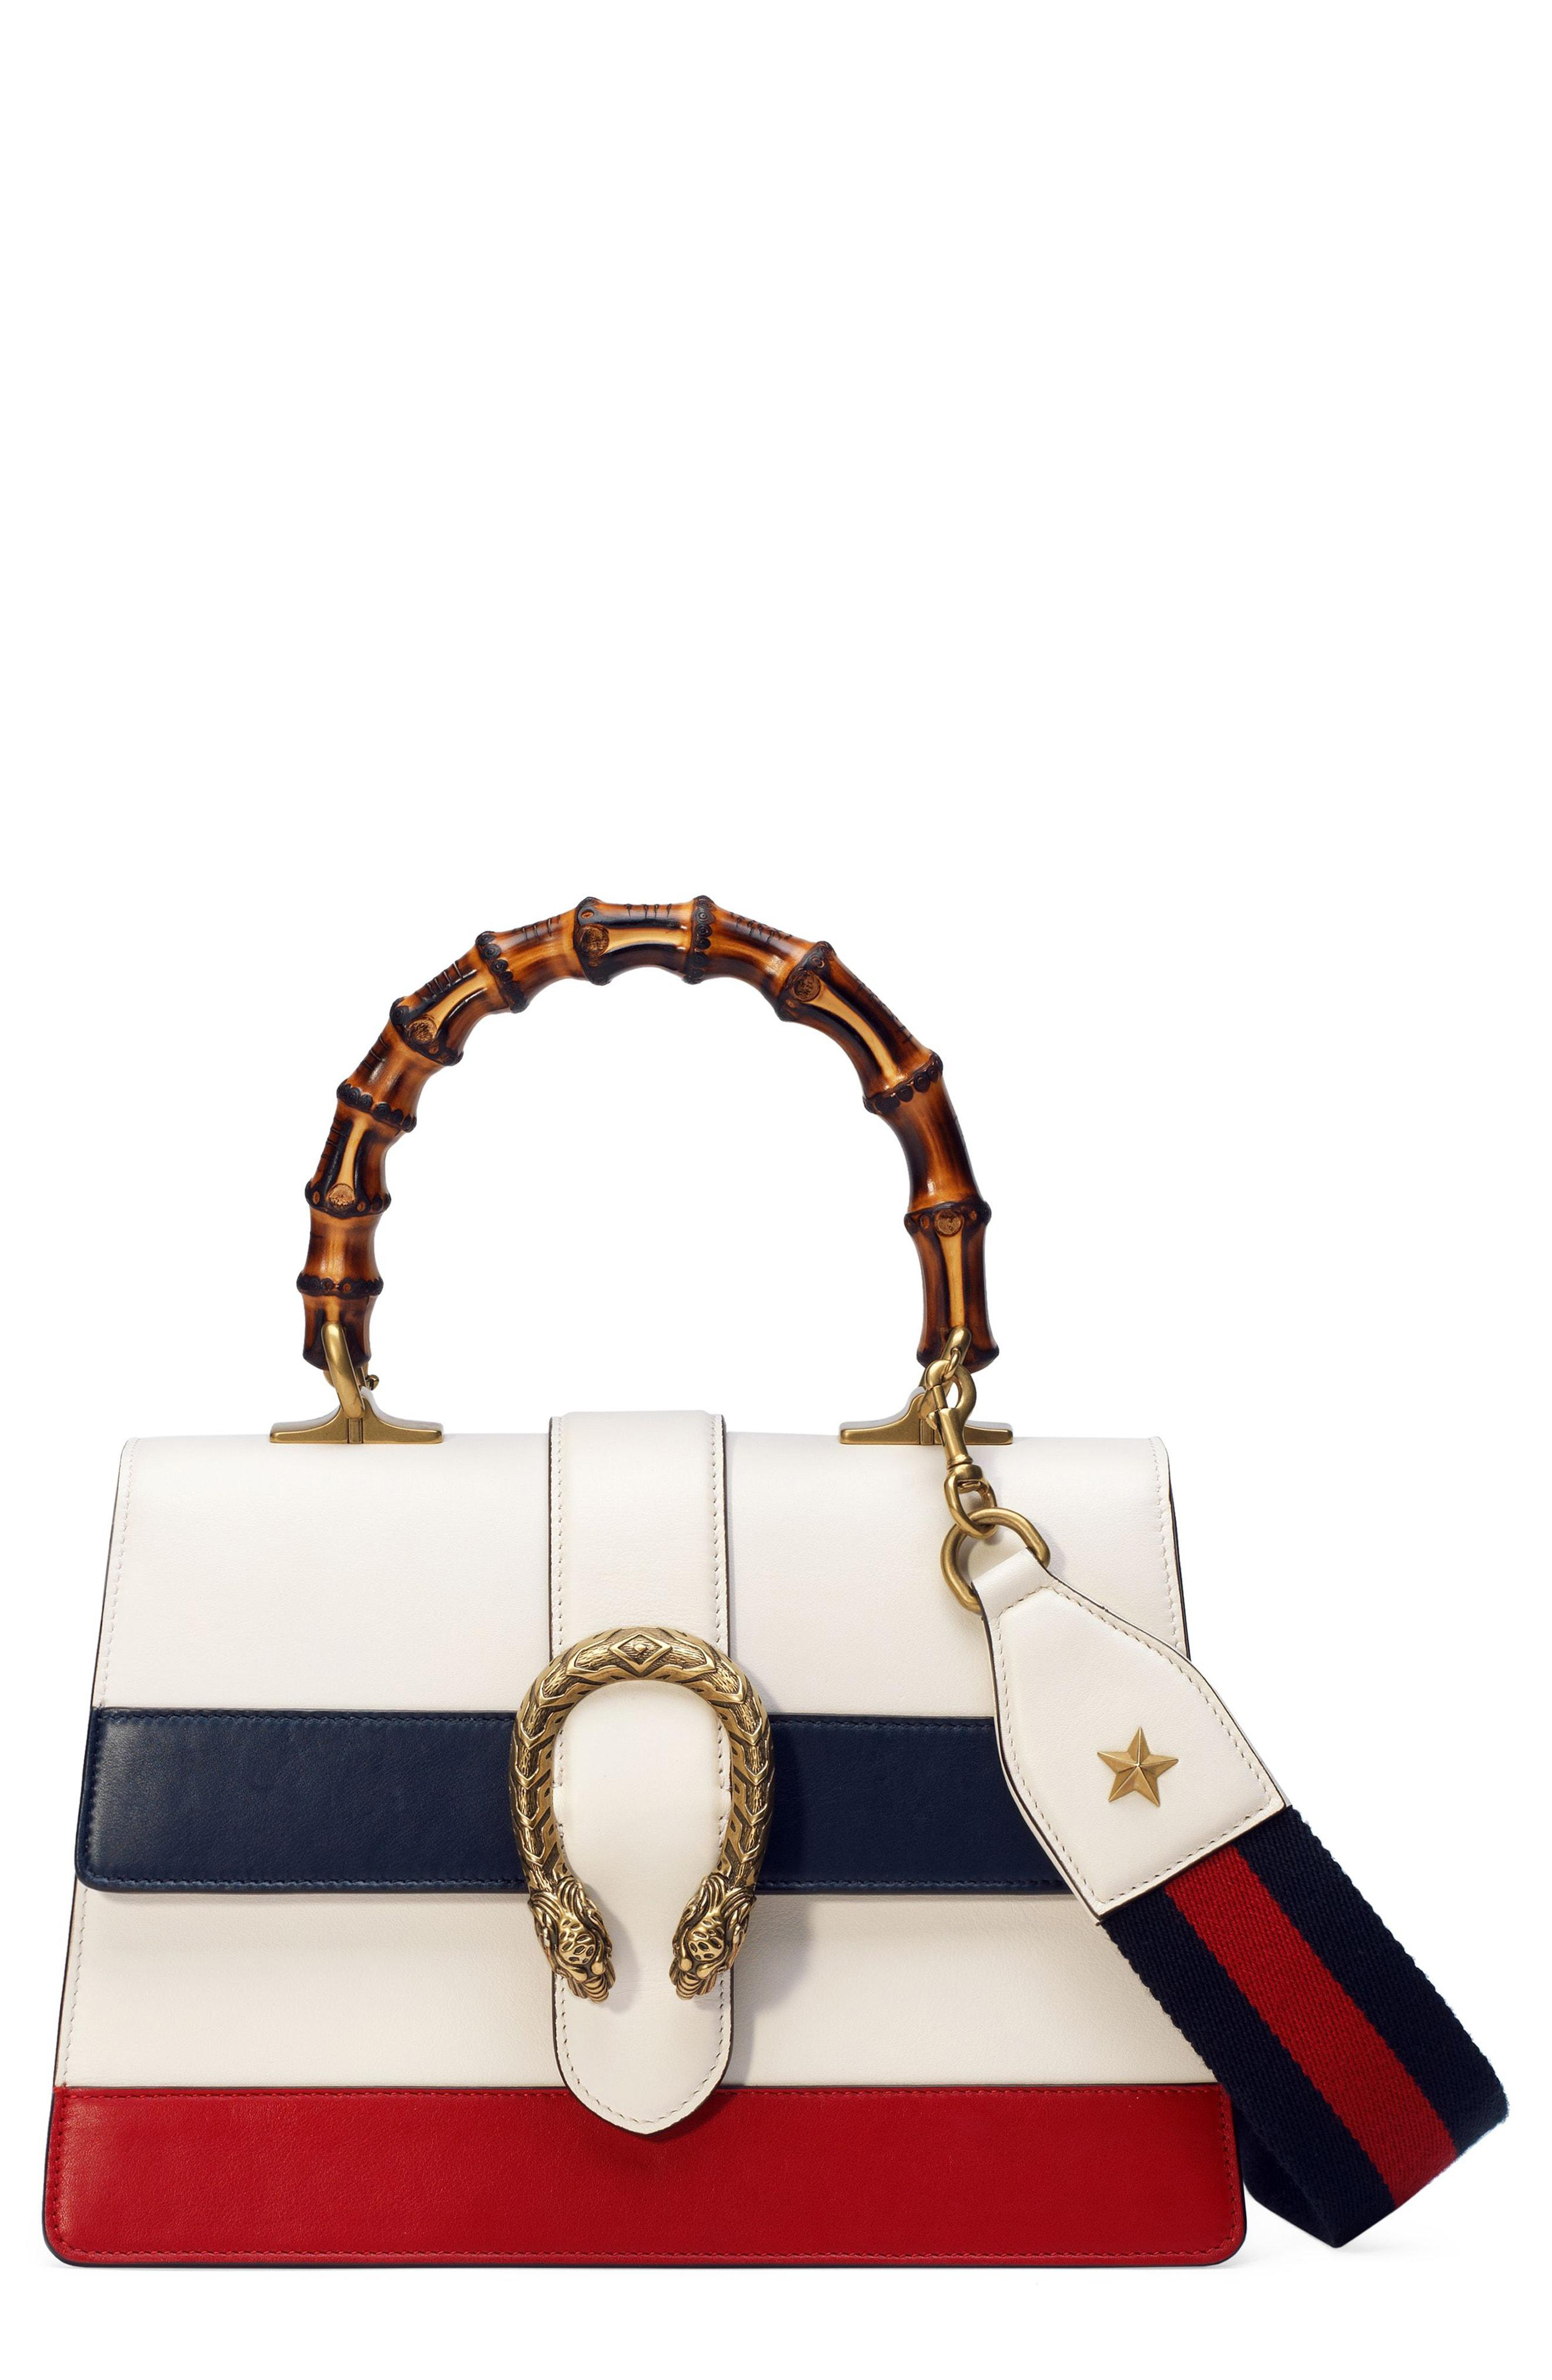 ff318bb2992 Lyst - Gucci Small Dionysus Top Handle Leather Shoulder Bag - in White